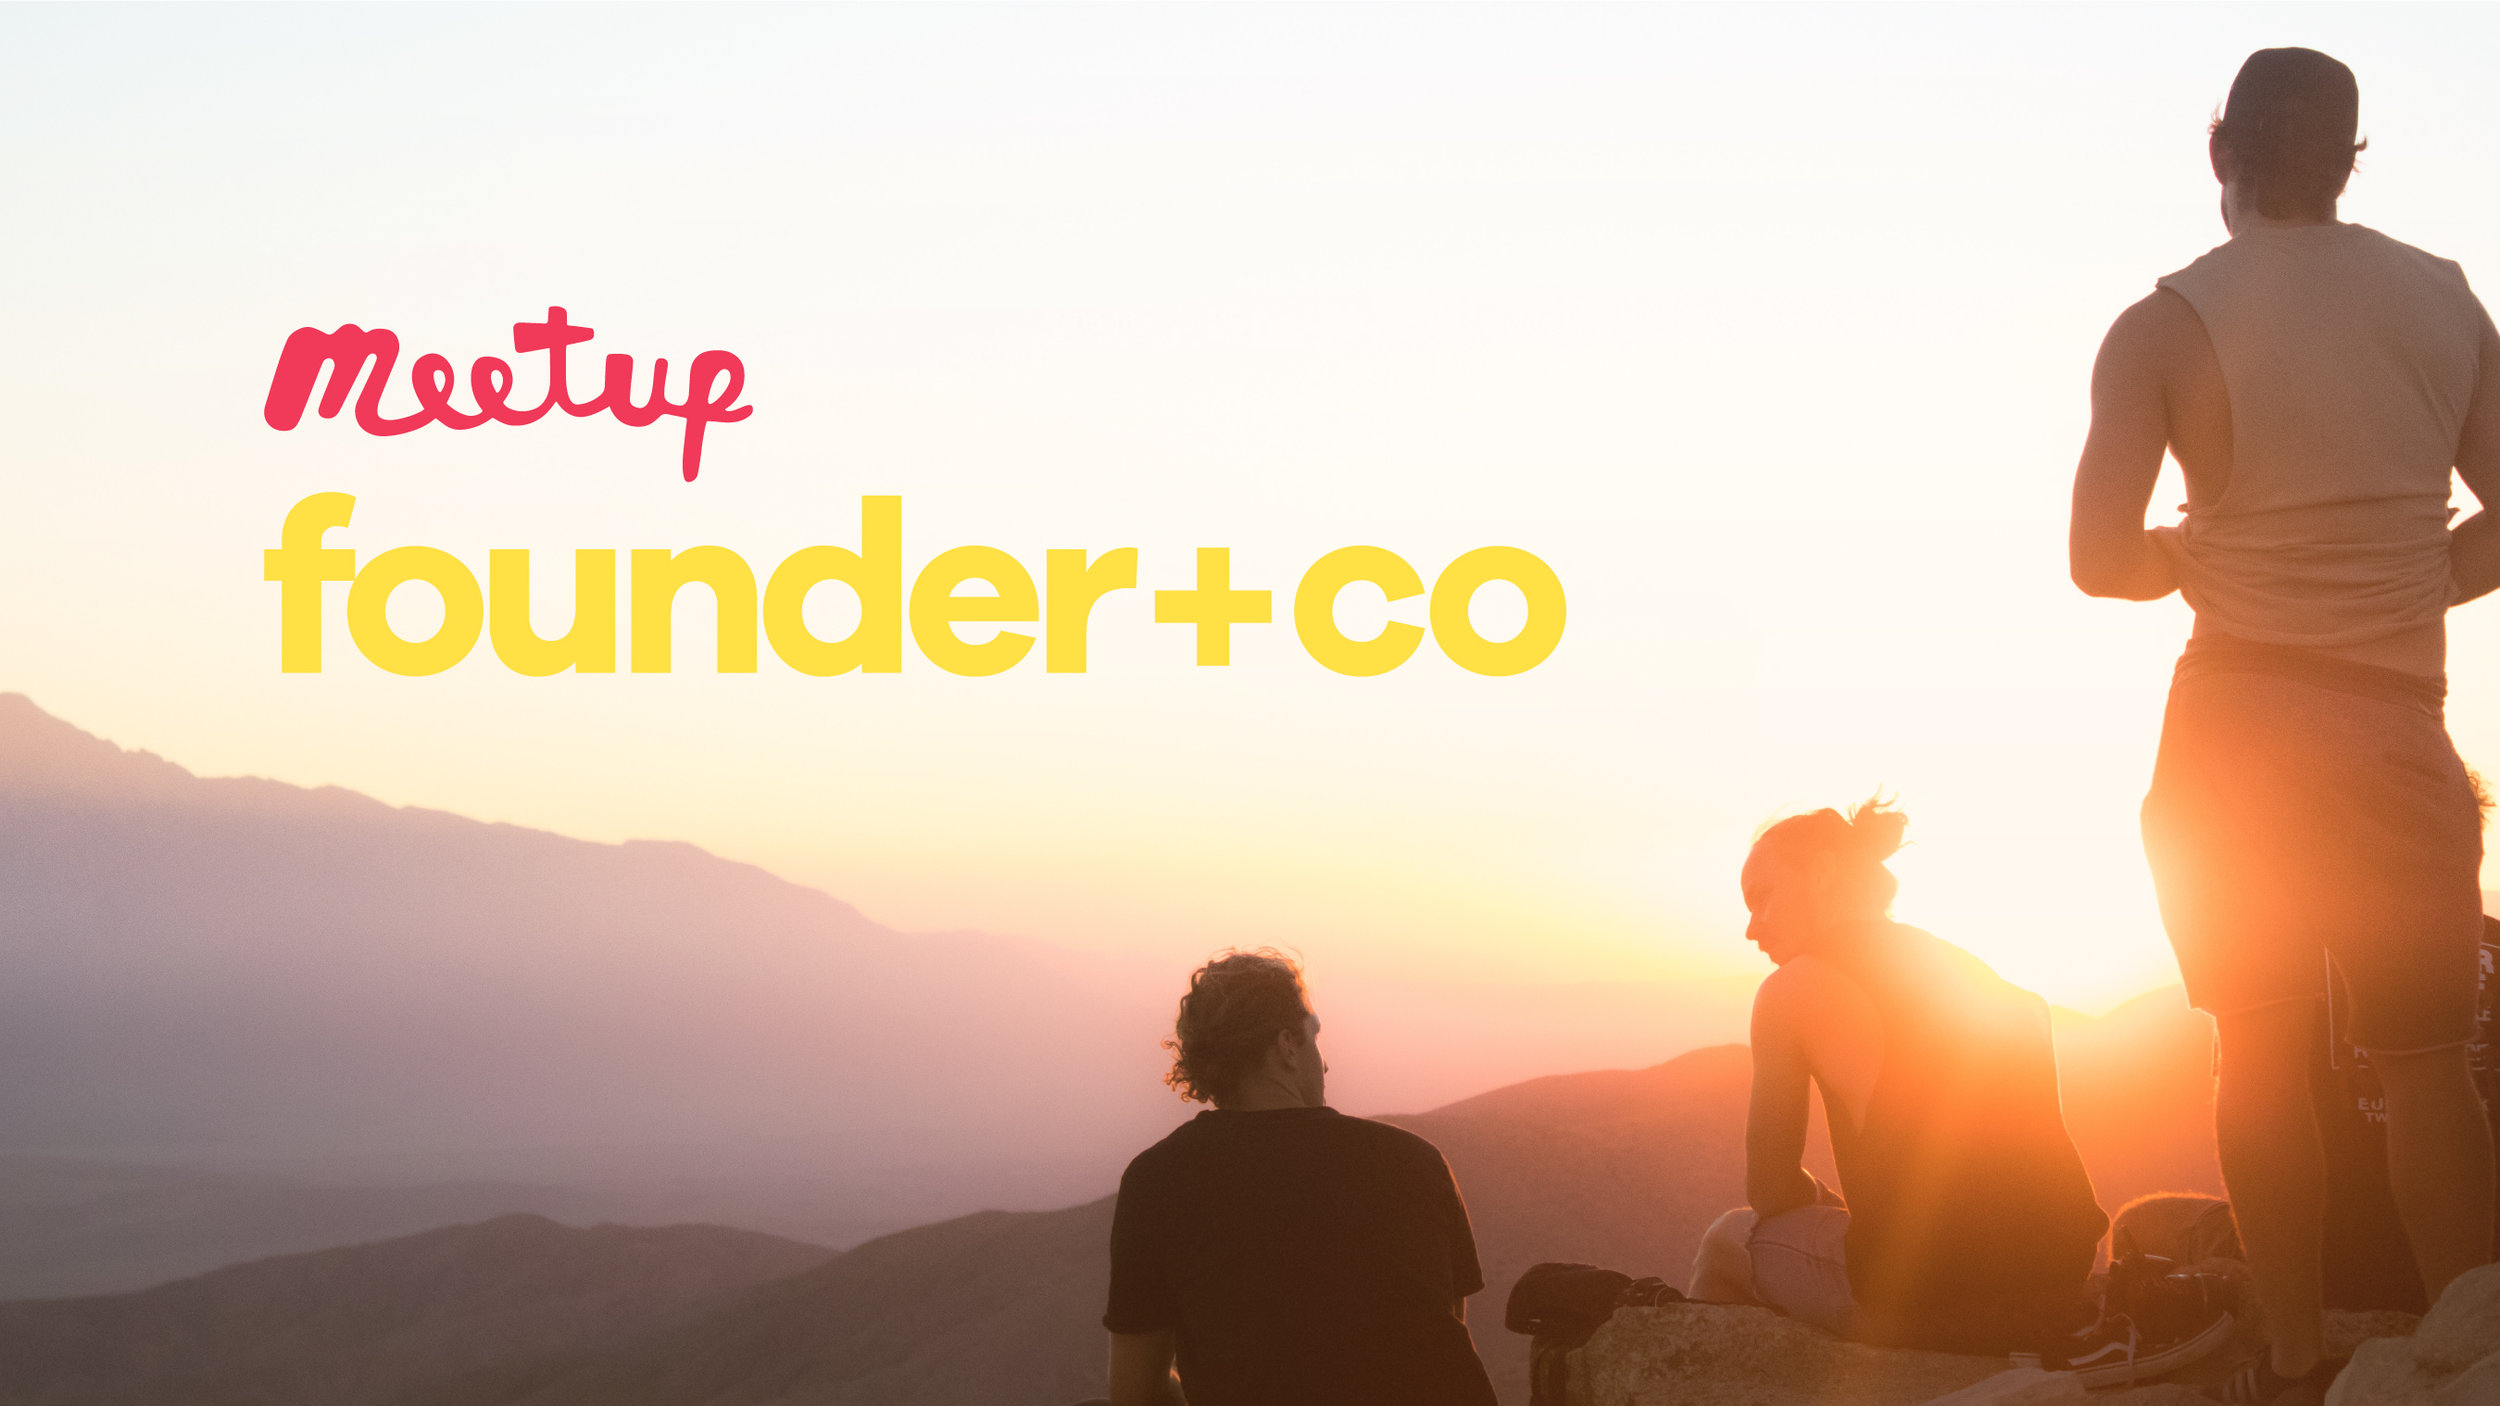 Better Together. - We're a growing community of founders, investors, talent and curious visionaries, all with the goal to make the world better. Check us out on Meetup to interact with our community, join the cause and help us change the world!